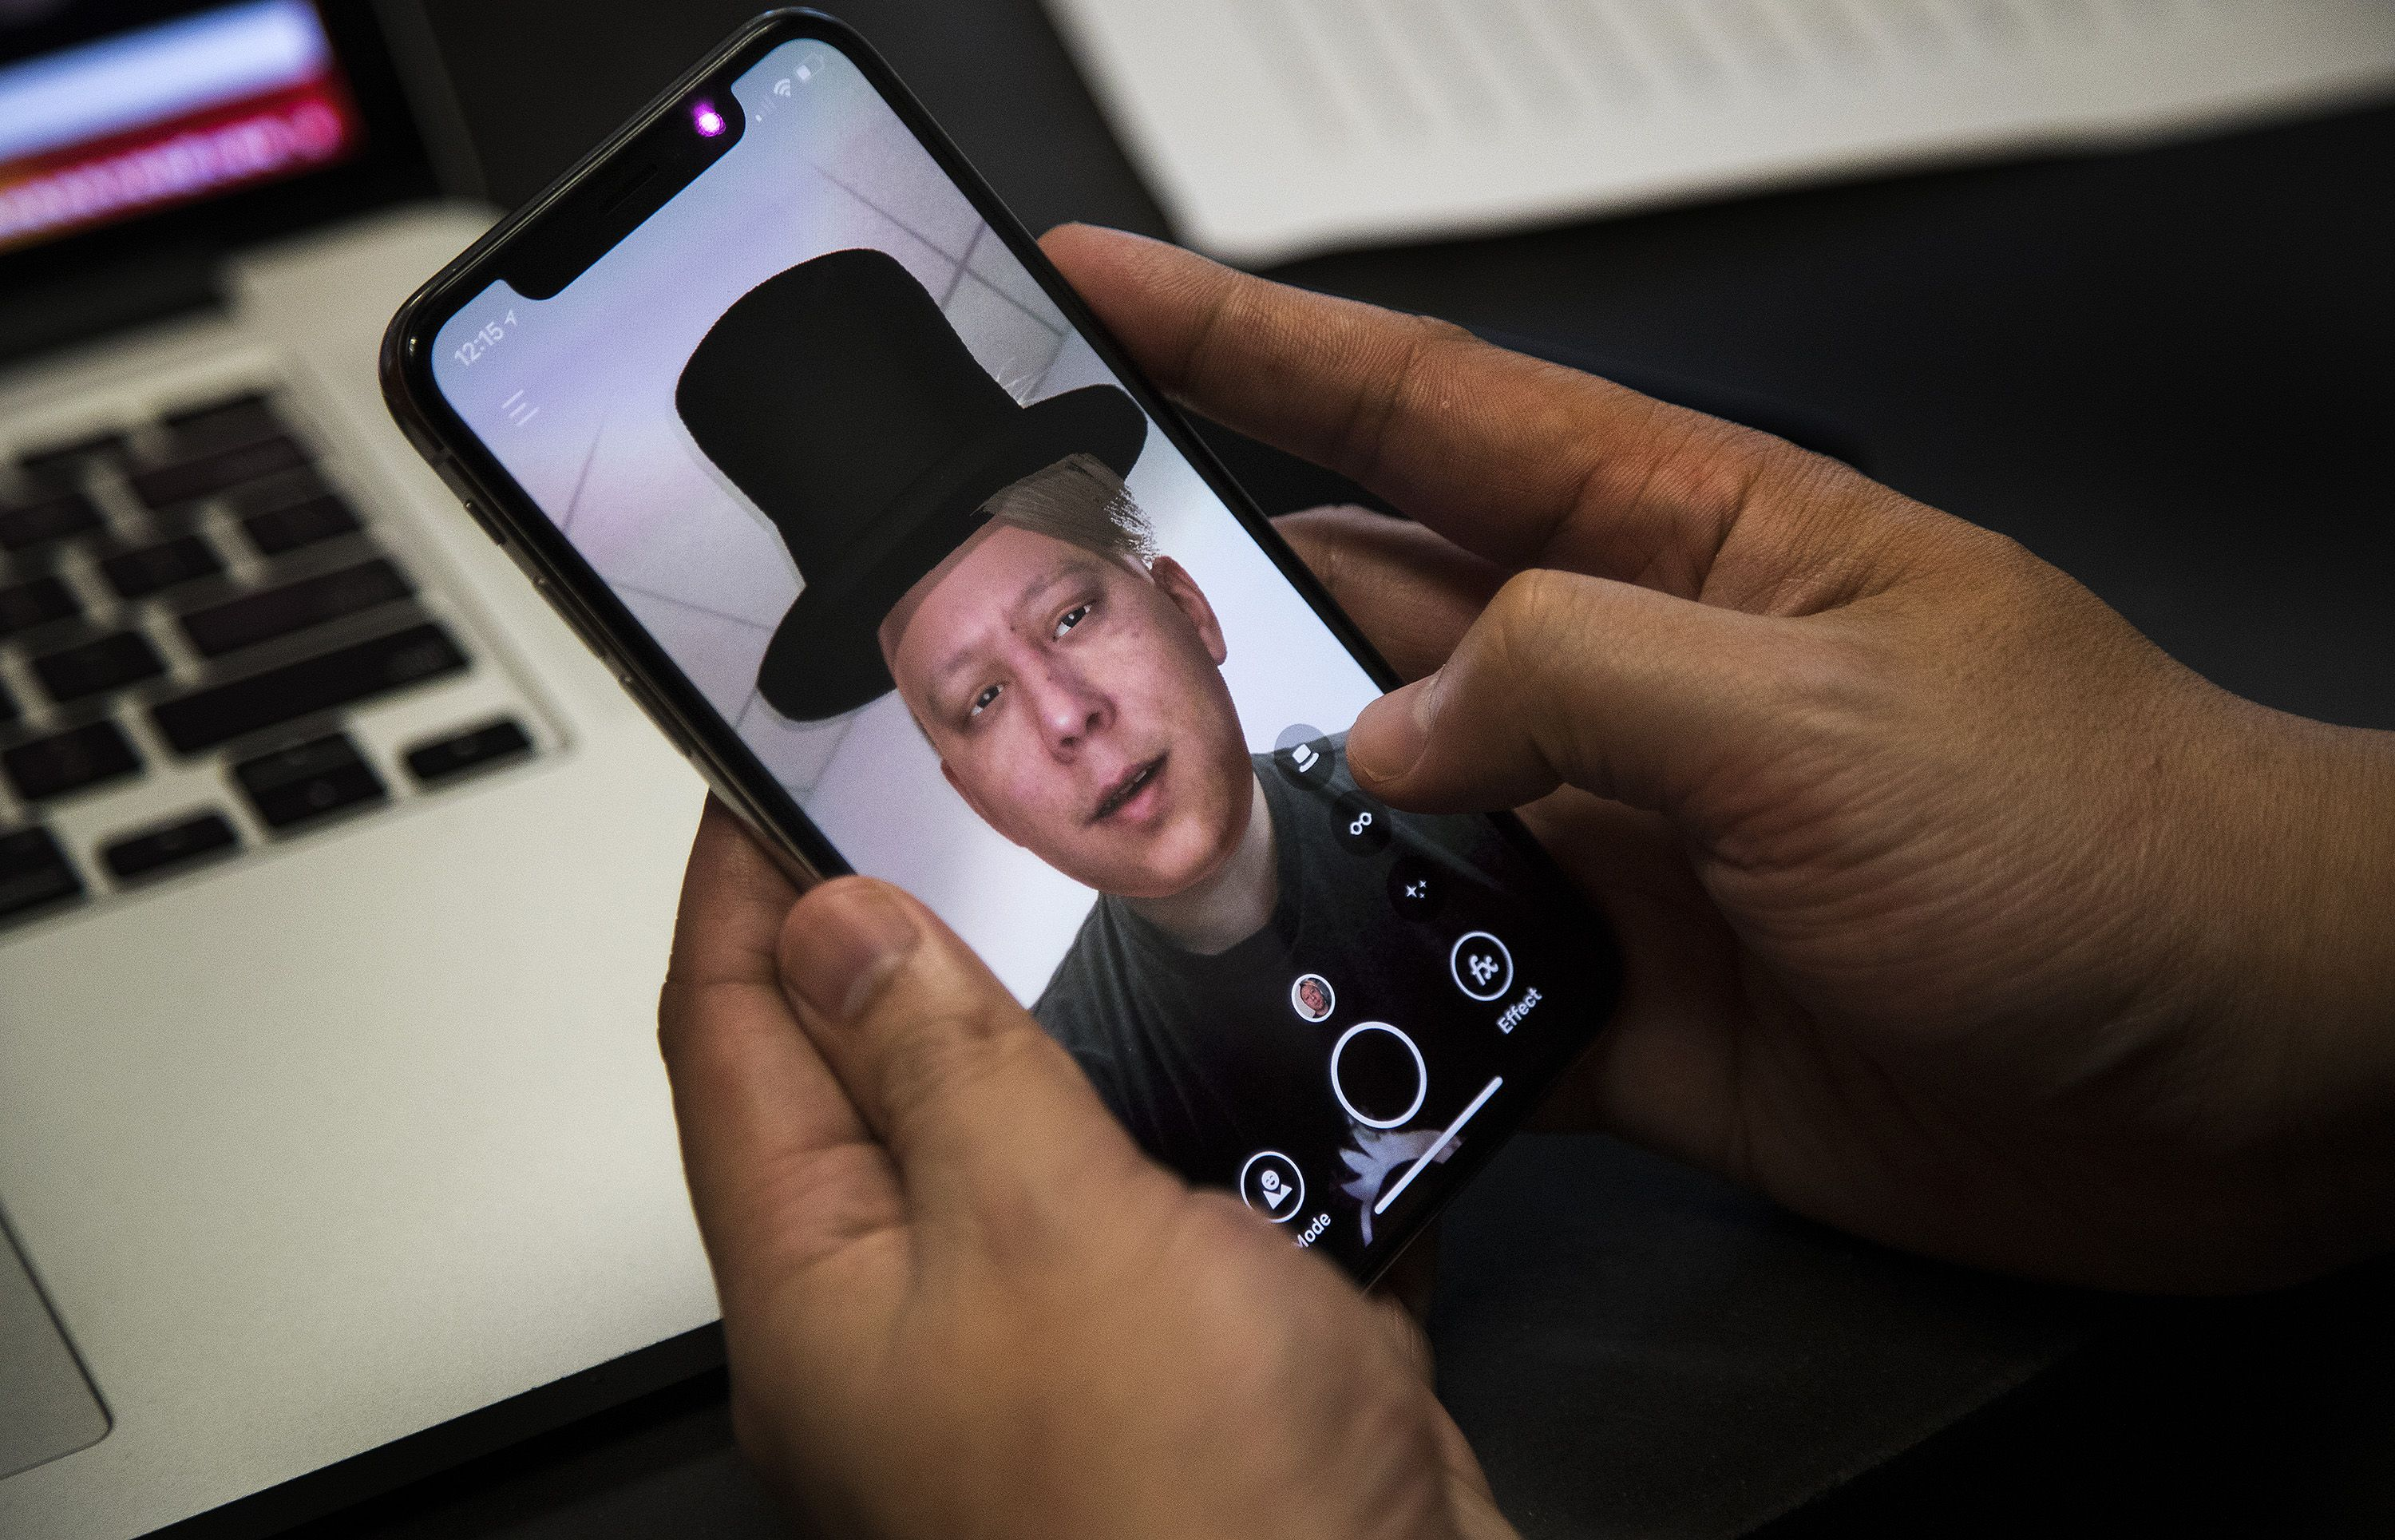 Hao Li, CEO of Pinscreen, shows another person's face on his body through his app Pinscreen on February 1, 2018 in Los Angeles, Calif. The company's goal is to make life-like avatars for gaming or communication, but in the wrong hands, the technology could easily be used to deceive people.(Gina Ferazzi/Los Angeles Times/TNS)